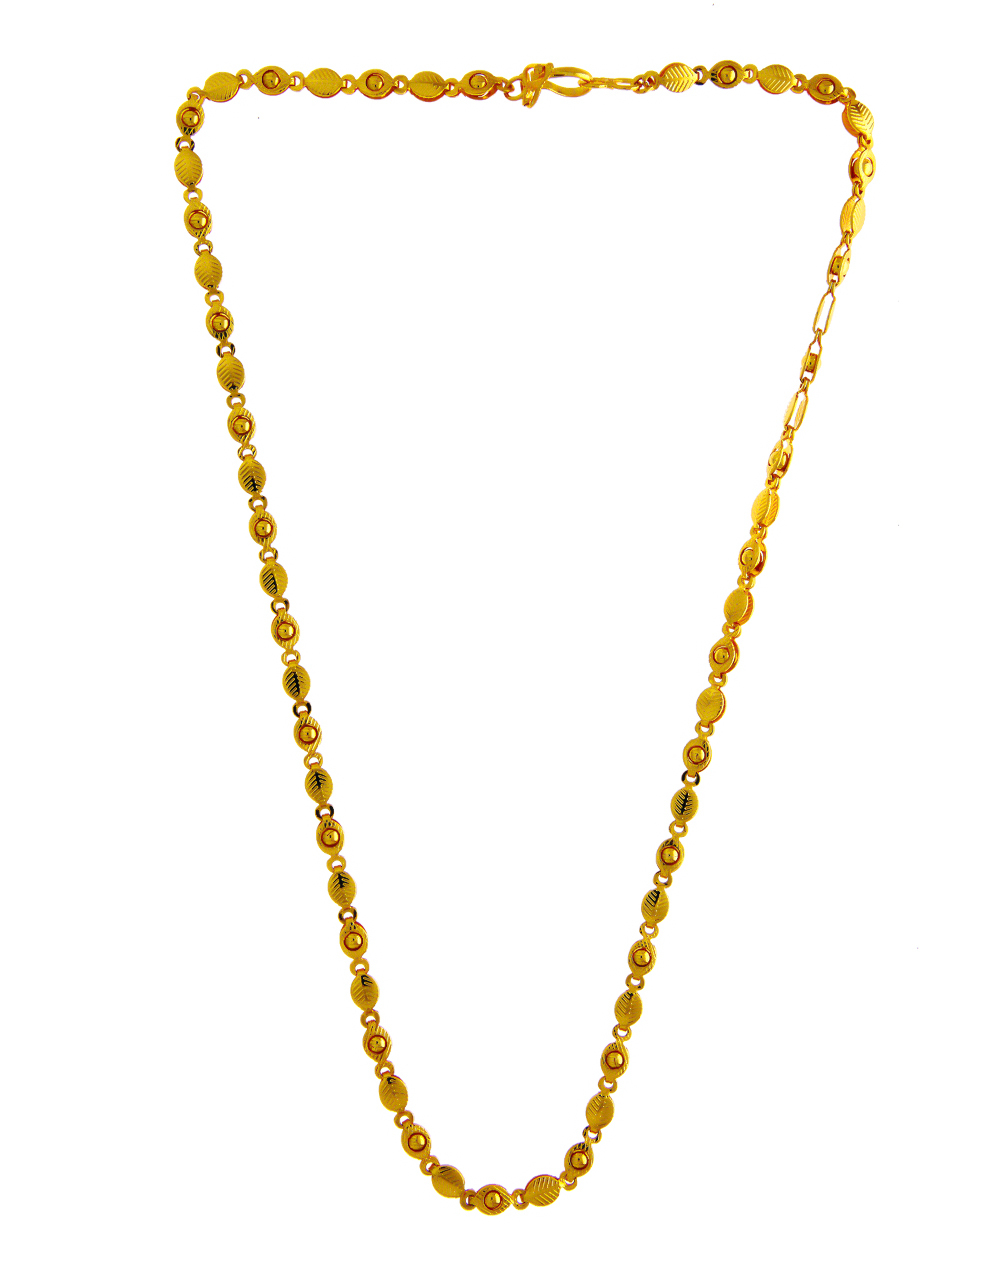 Fashionable Gold Finish Unisex Chain For Fancy Wear